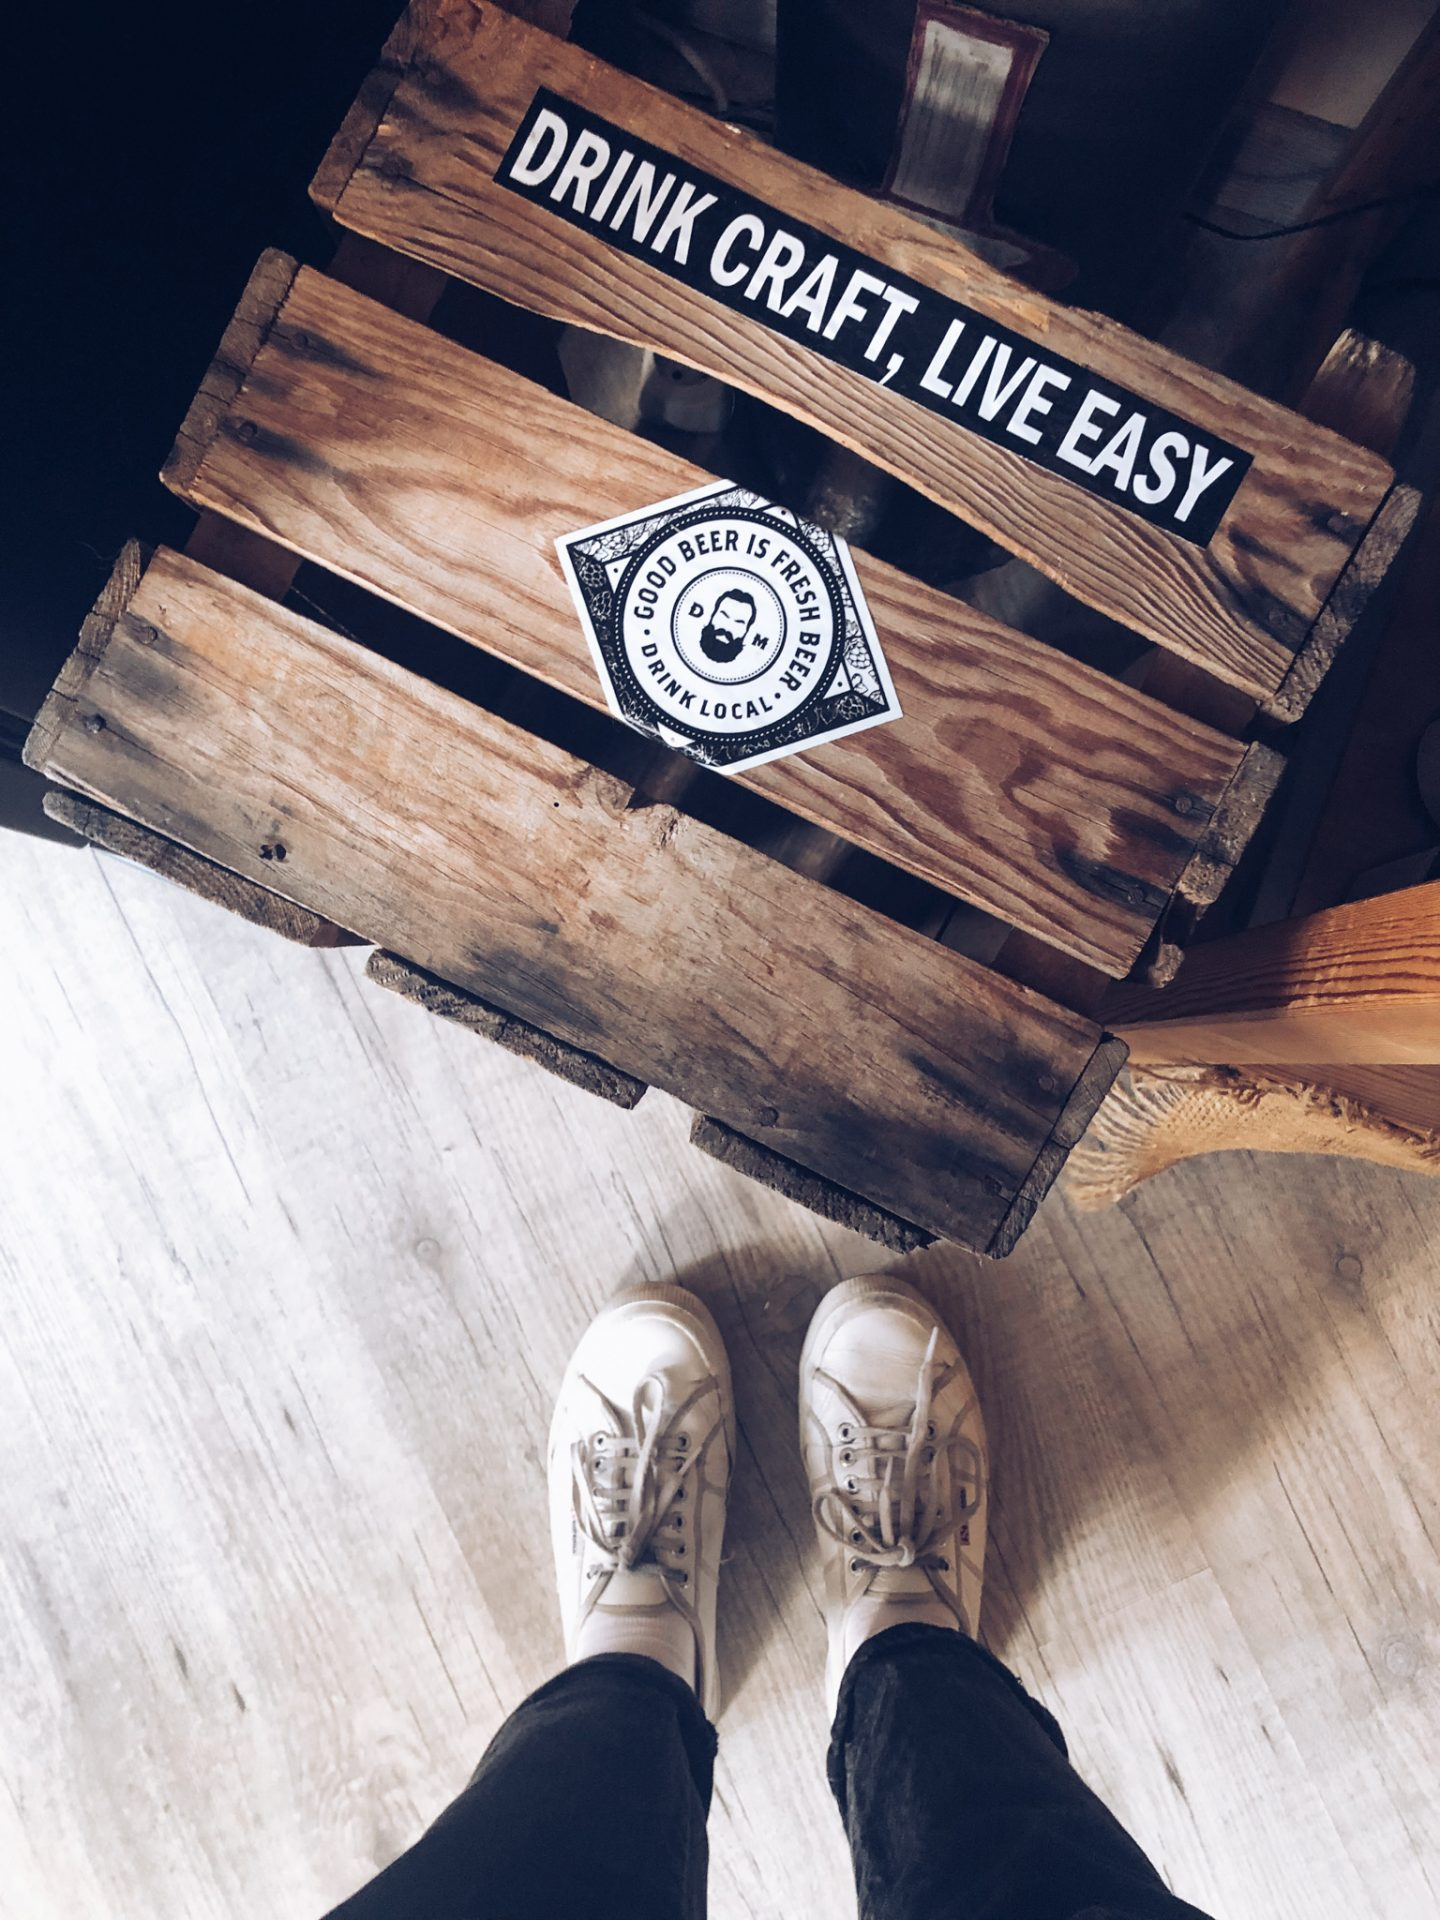 looking down on charlie's feet in white trainers, stood next to a wooden crate with a sticker that says 'drink craft, live easy'